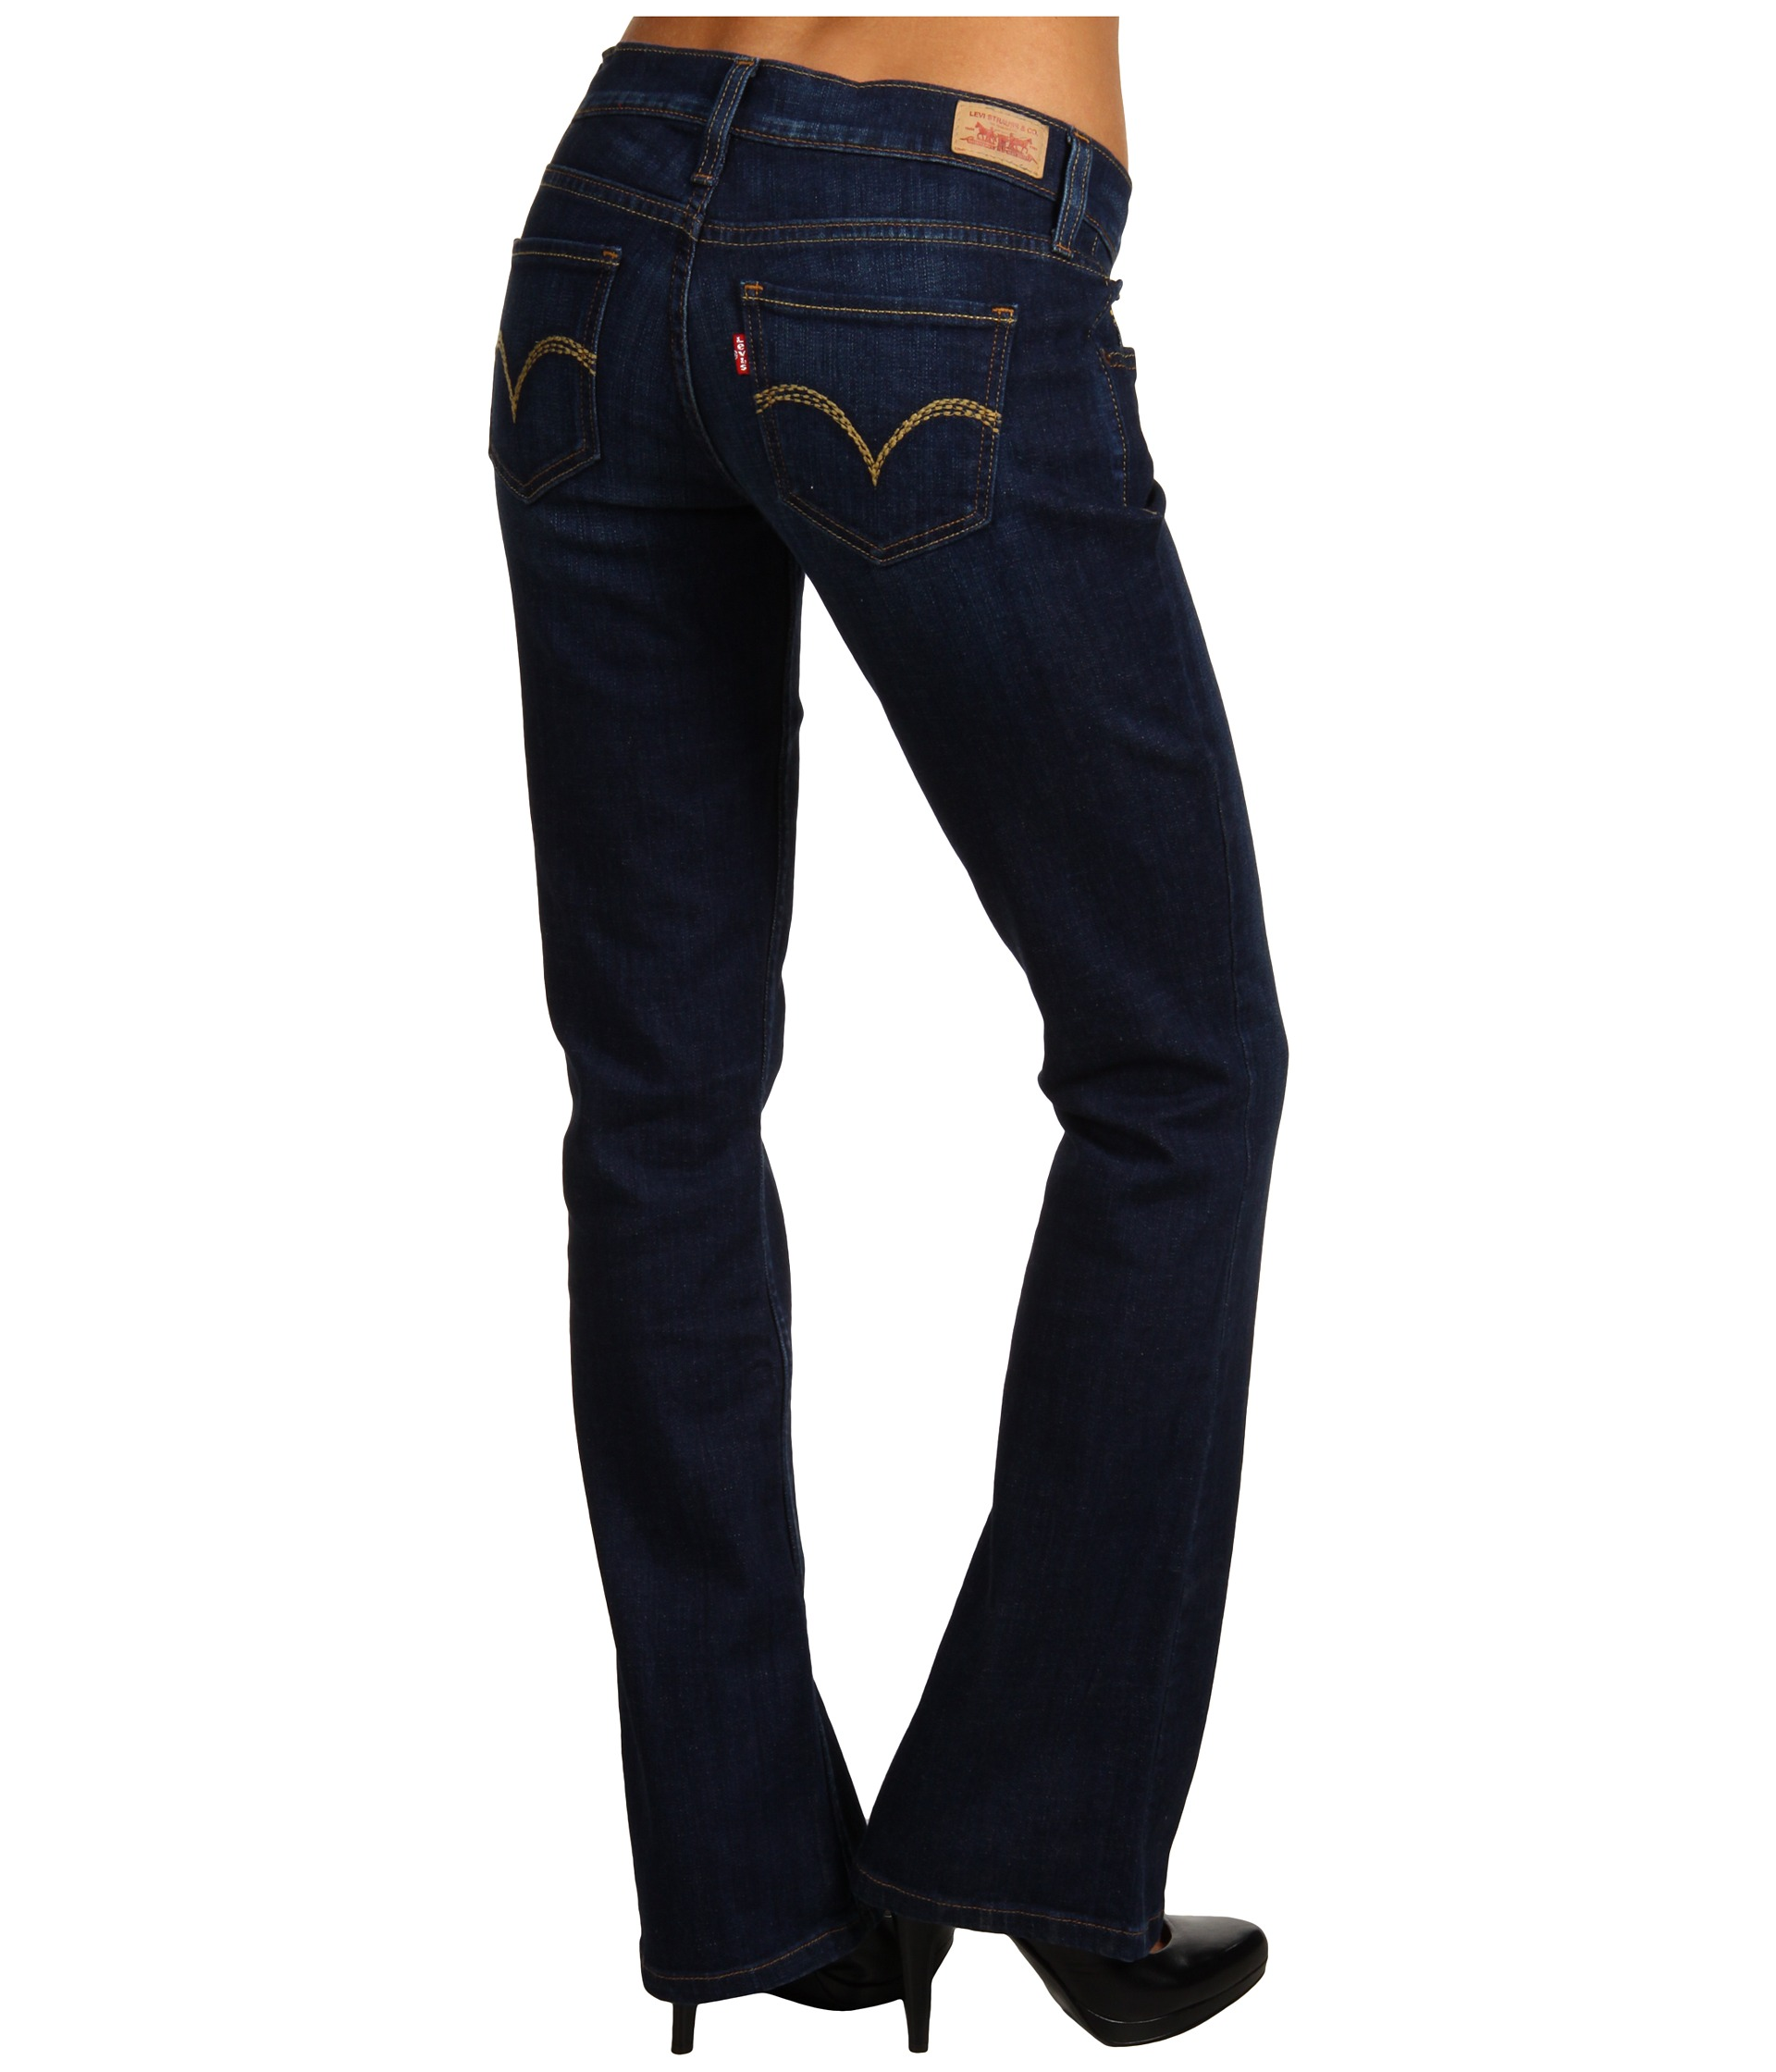 Levis Juniors 524 Boot Cut W Back Pocket Embellishment